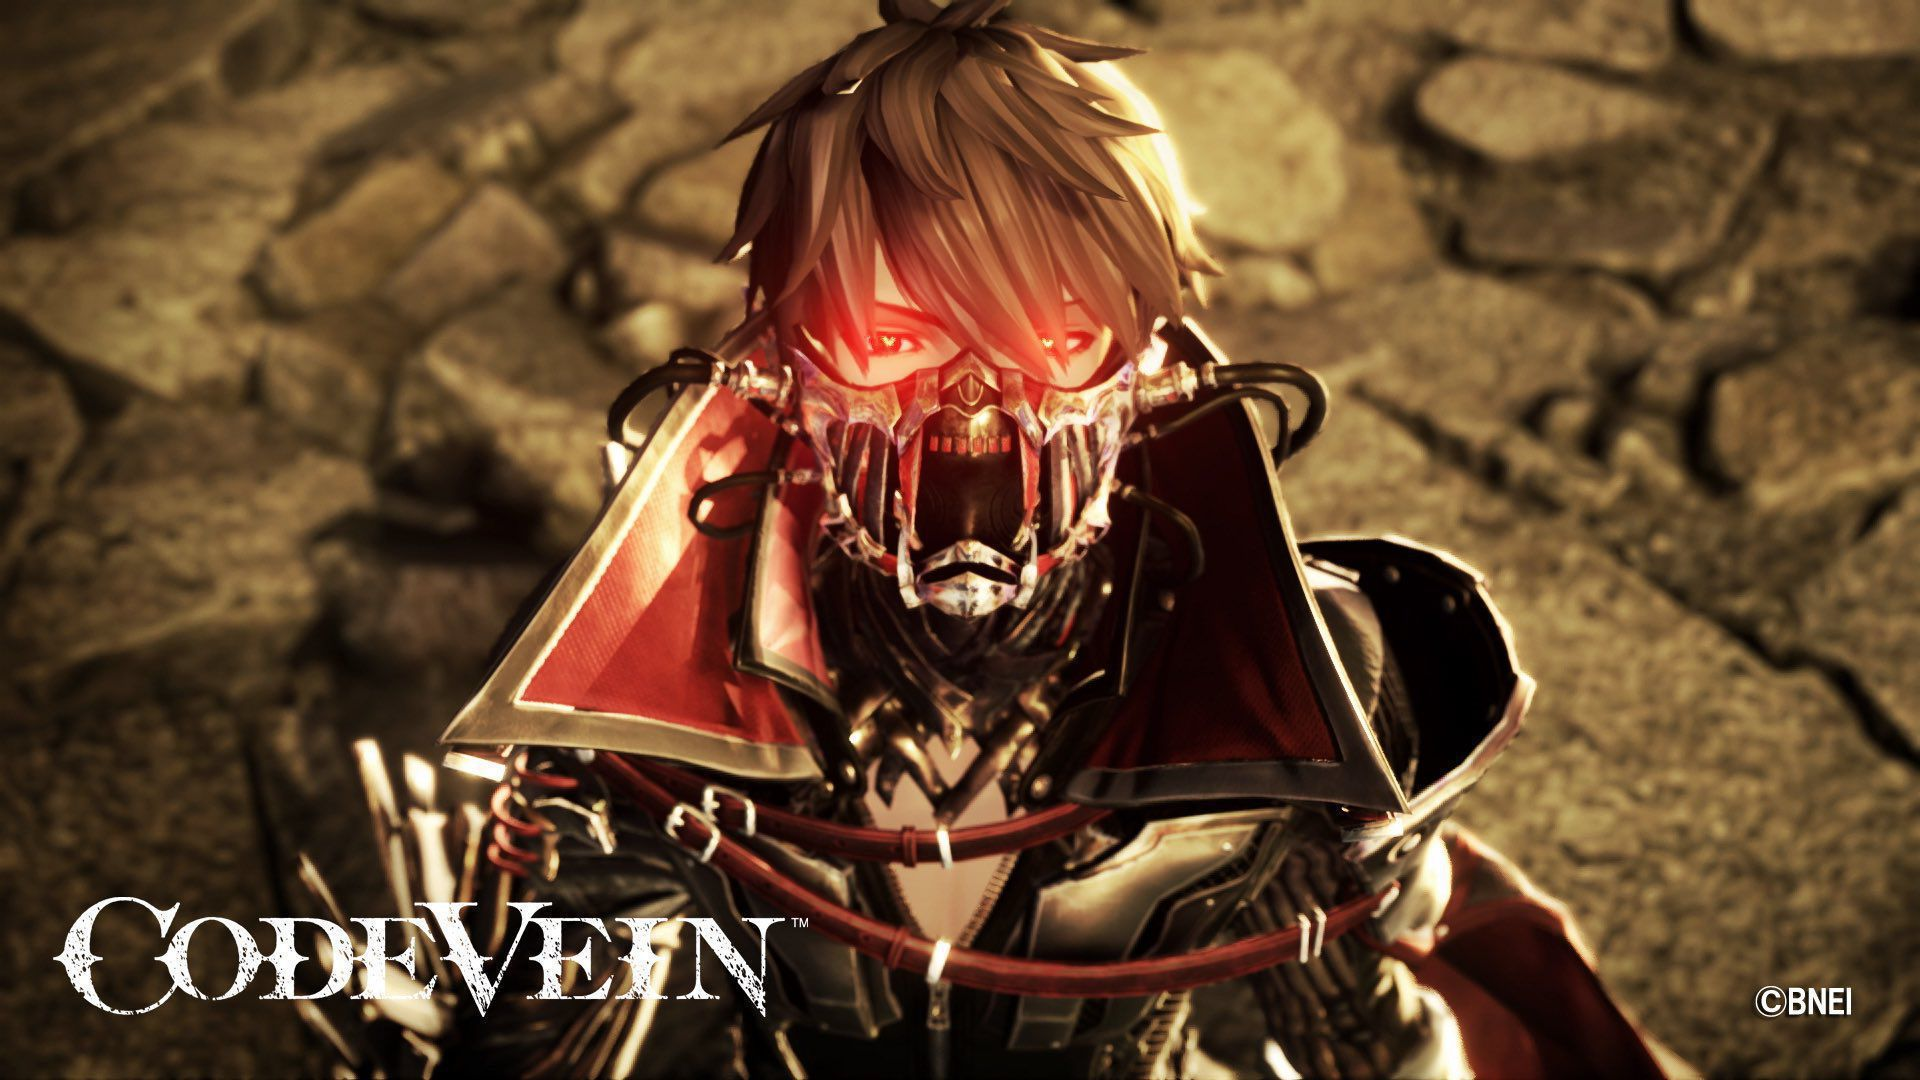 code vein game wallpaper 68779